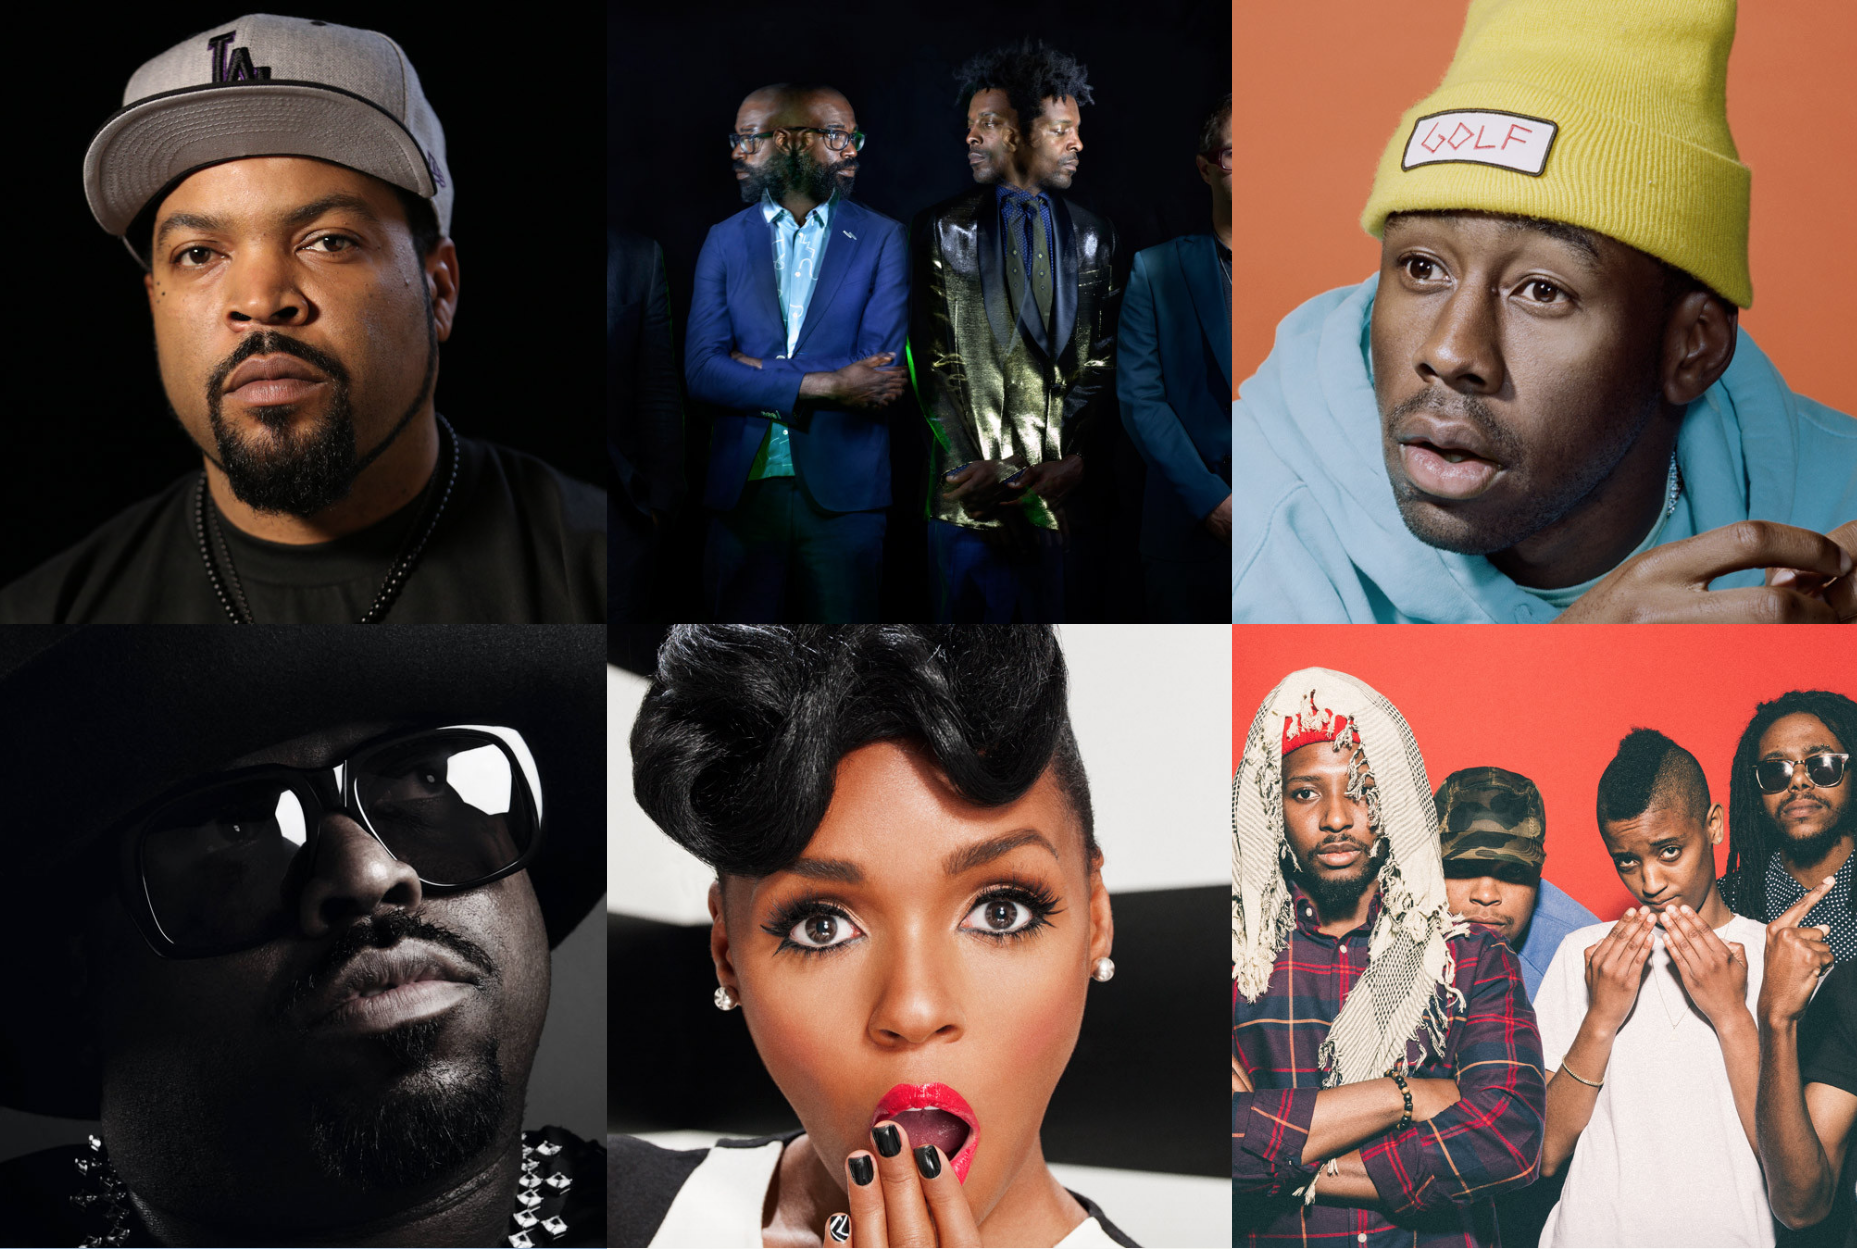 Ice Cube, Janelle Monae, The Internet & More Set To Headline AfroPunk 2016